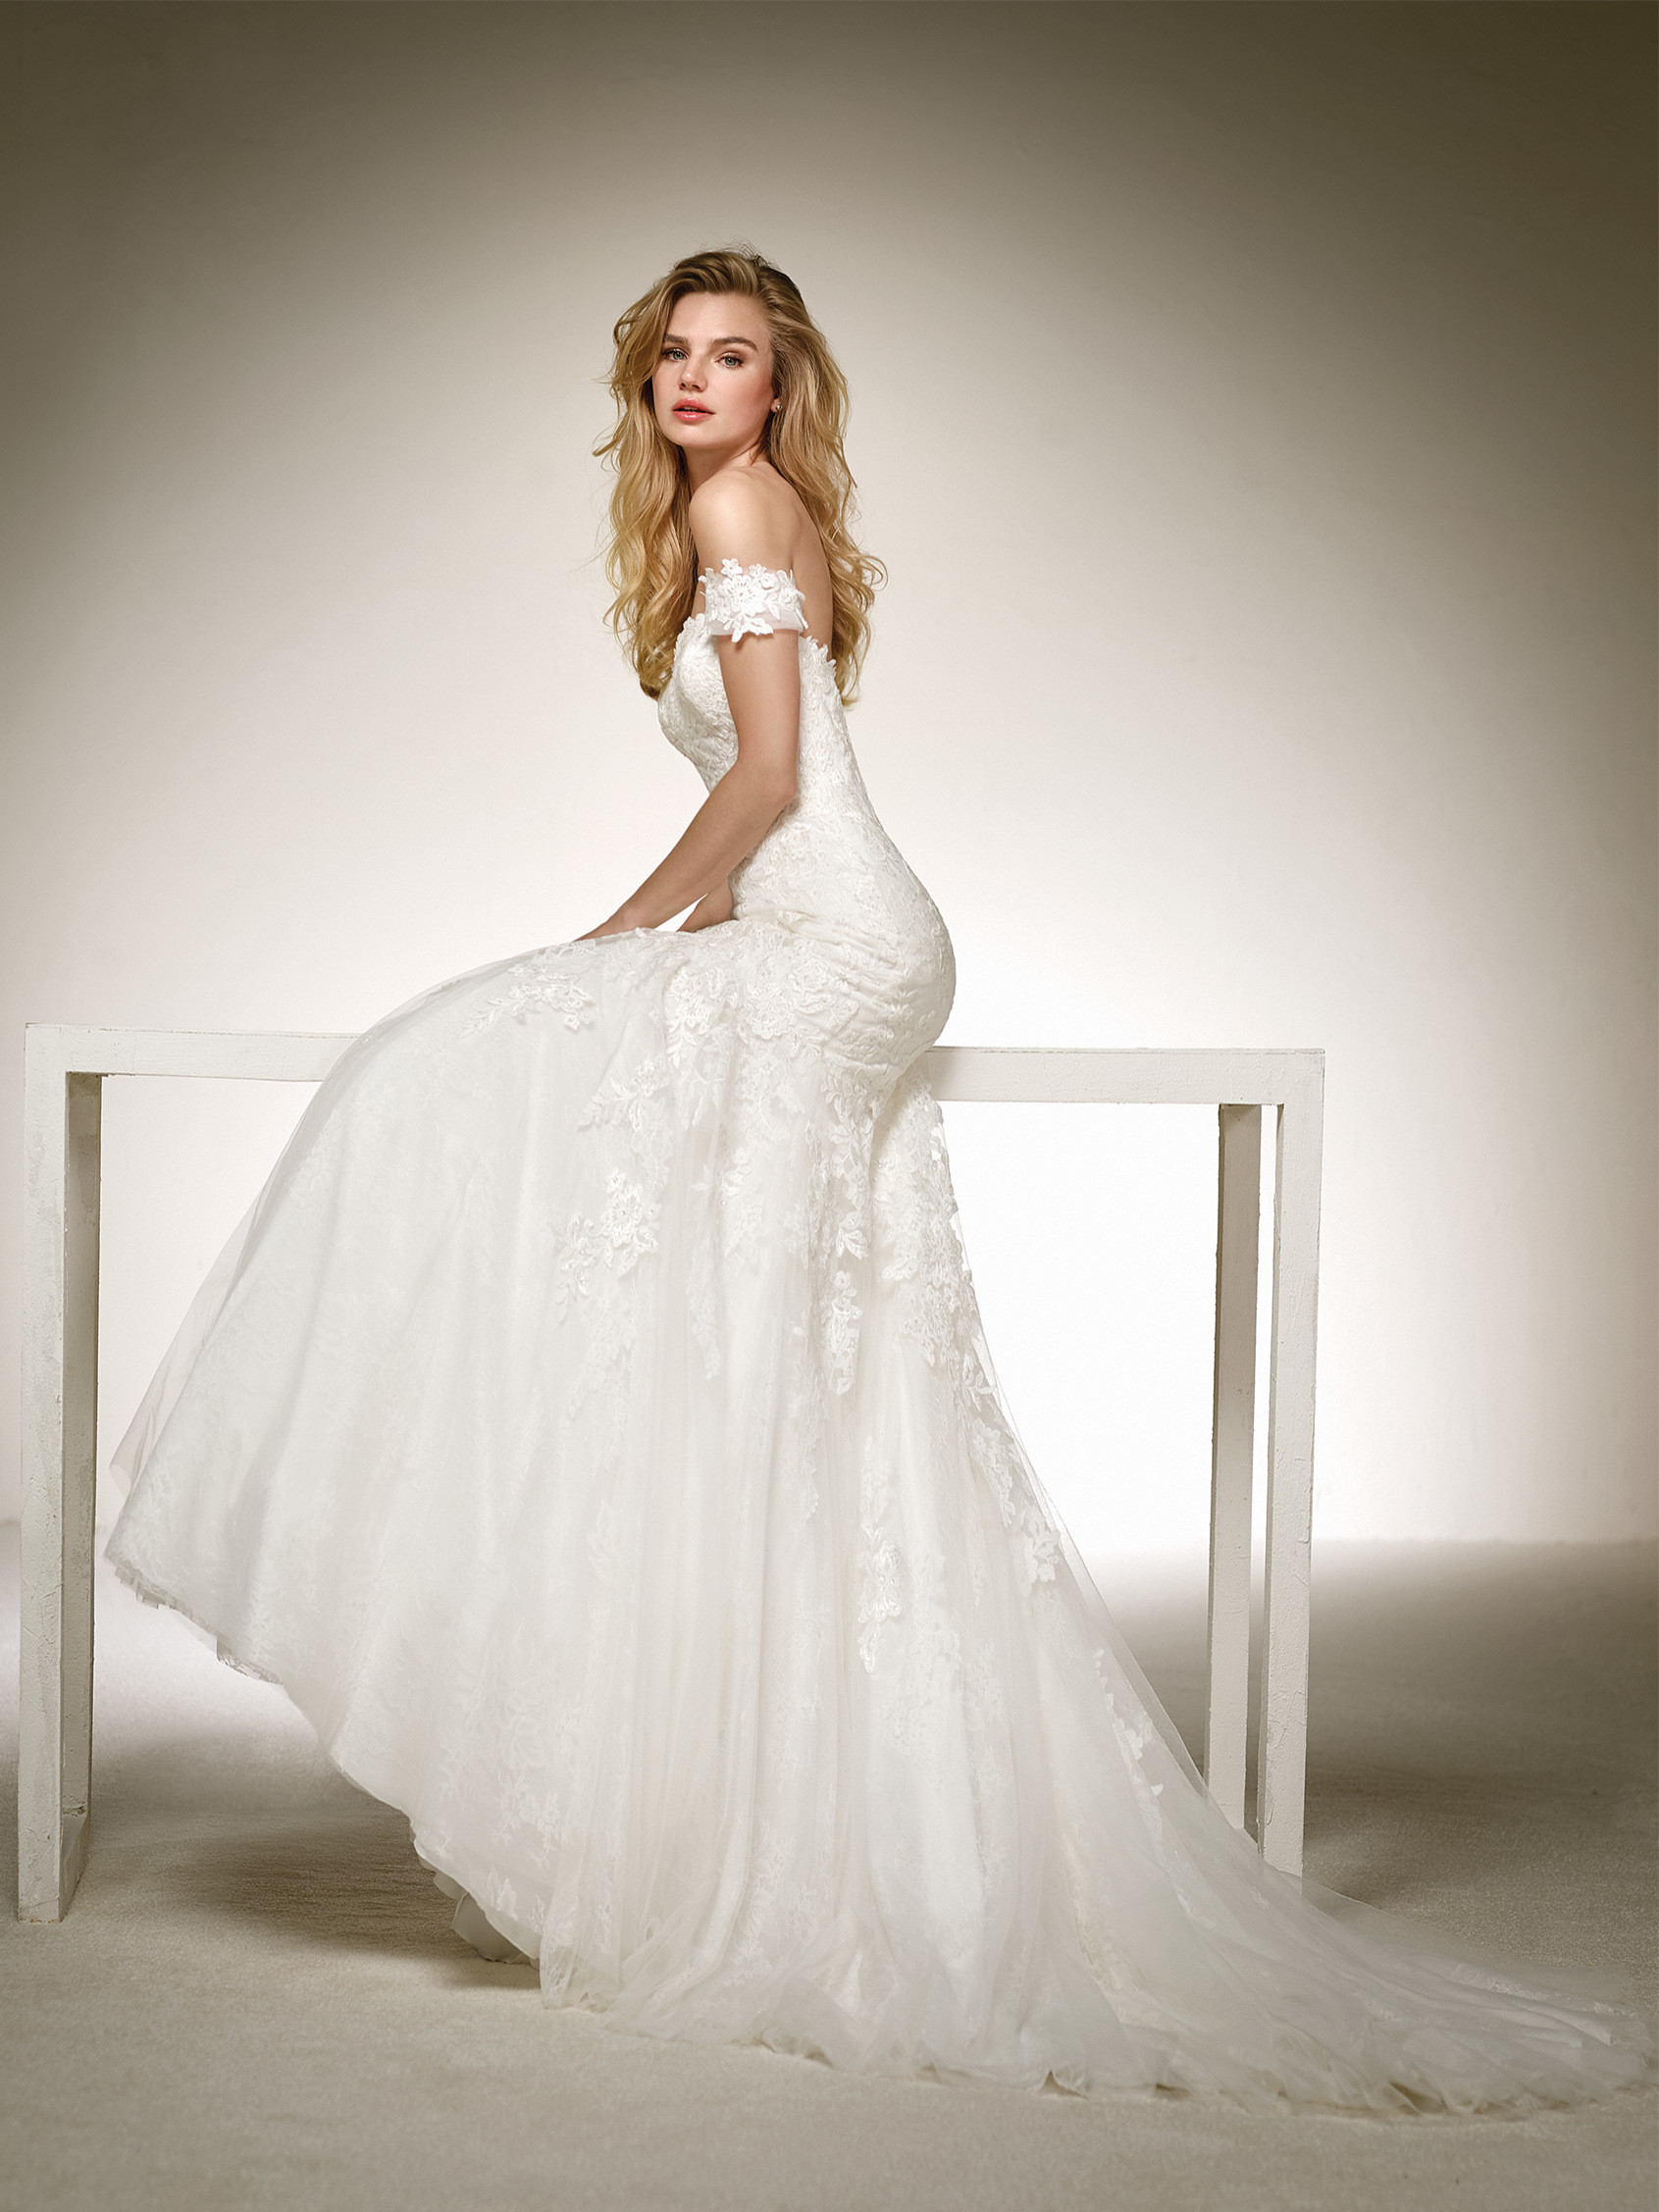 DONA PRONOVIAS Romantique Bridal Magherafelt Northern Ireland